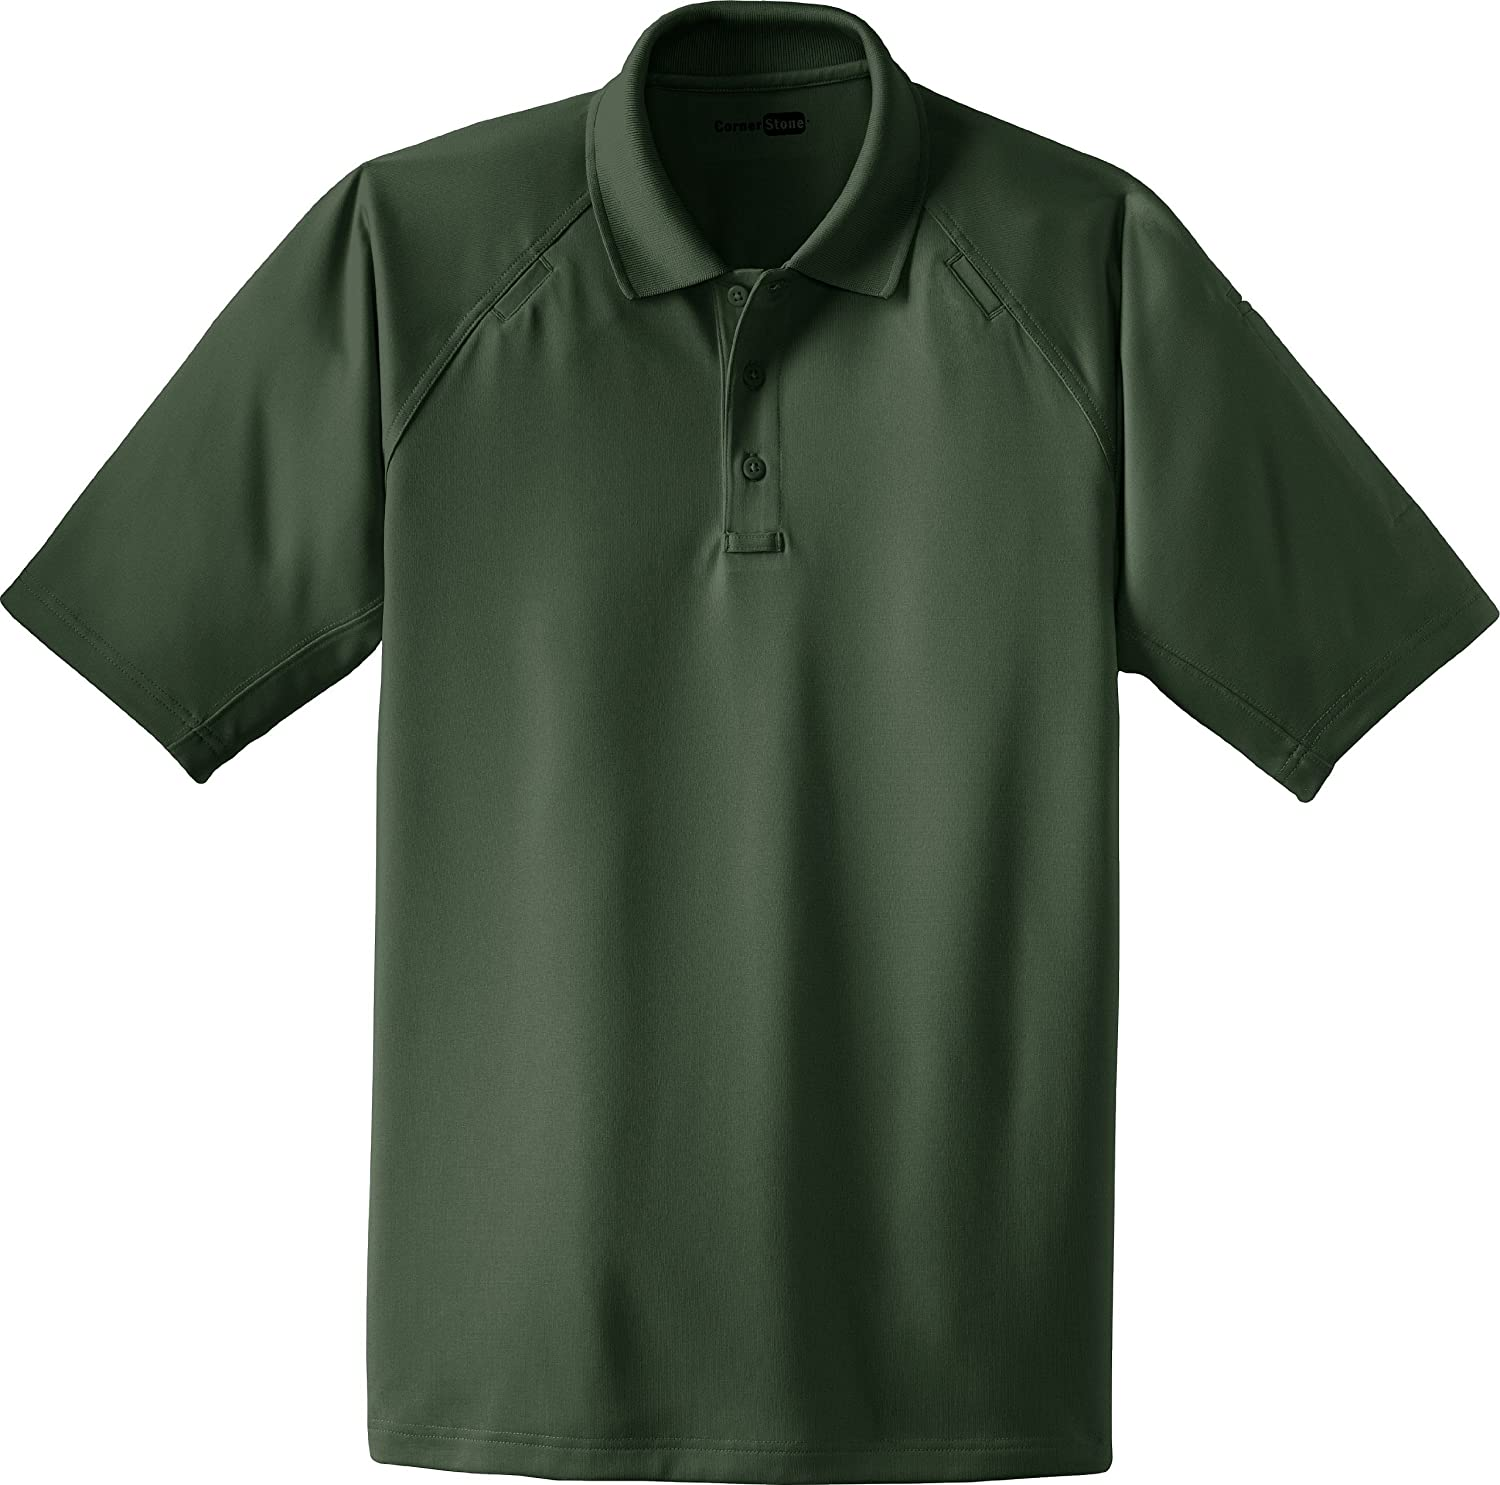 CornerStone Men's Select Snag Proof Tactical Polo